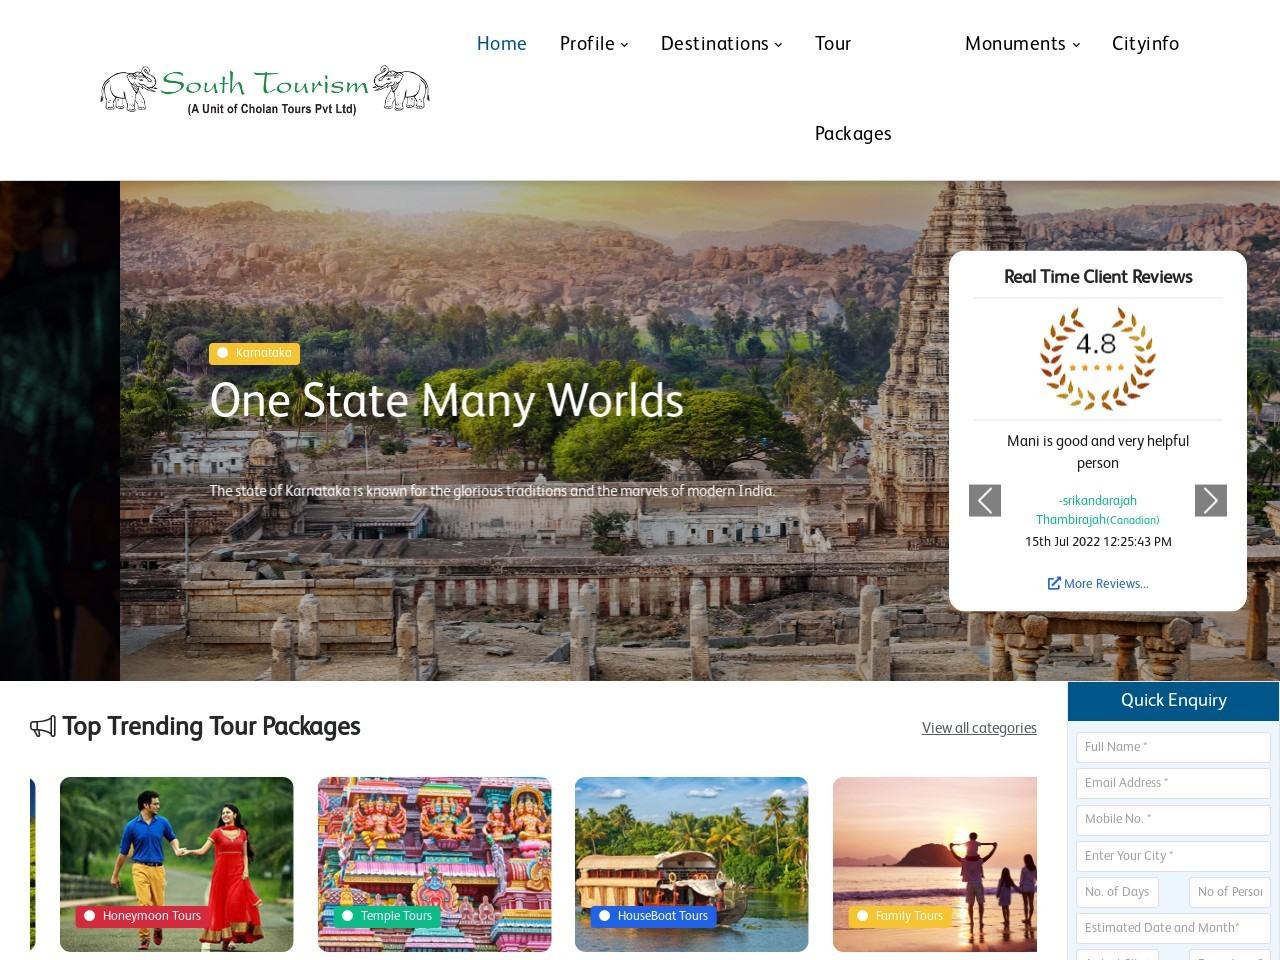 Emerald Lake – Tourist Attractions of Tamilnadu – South Tourism